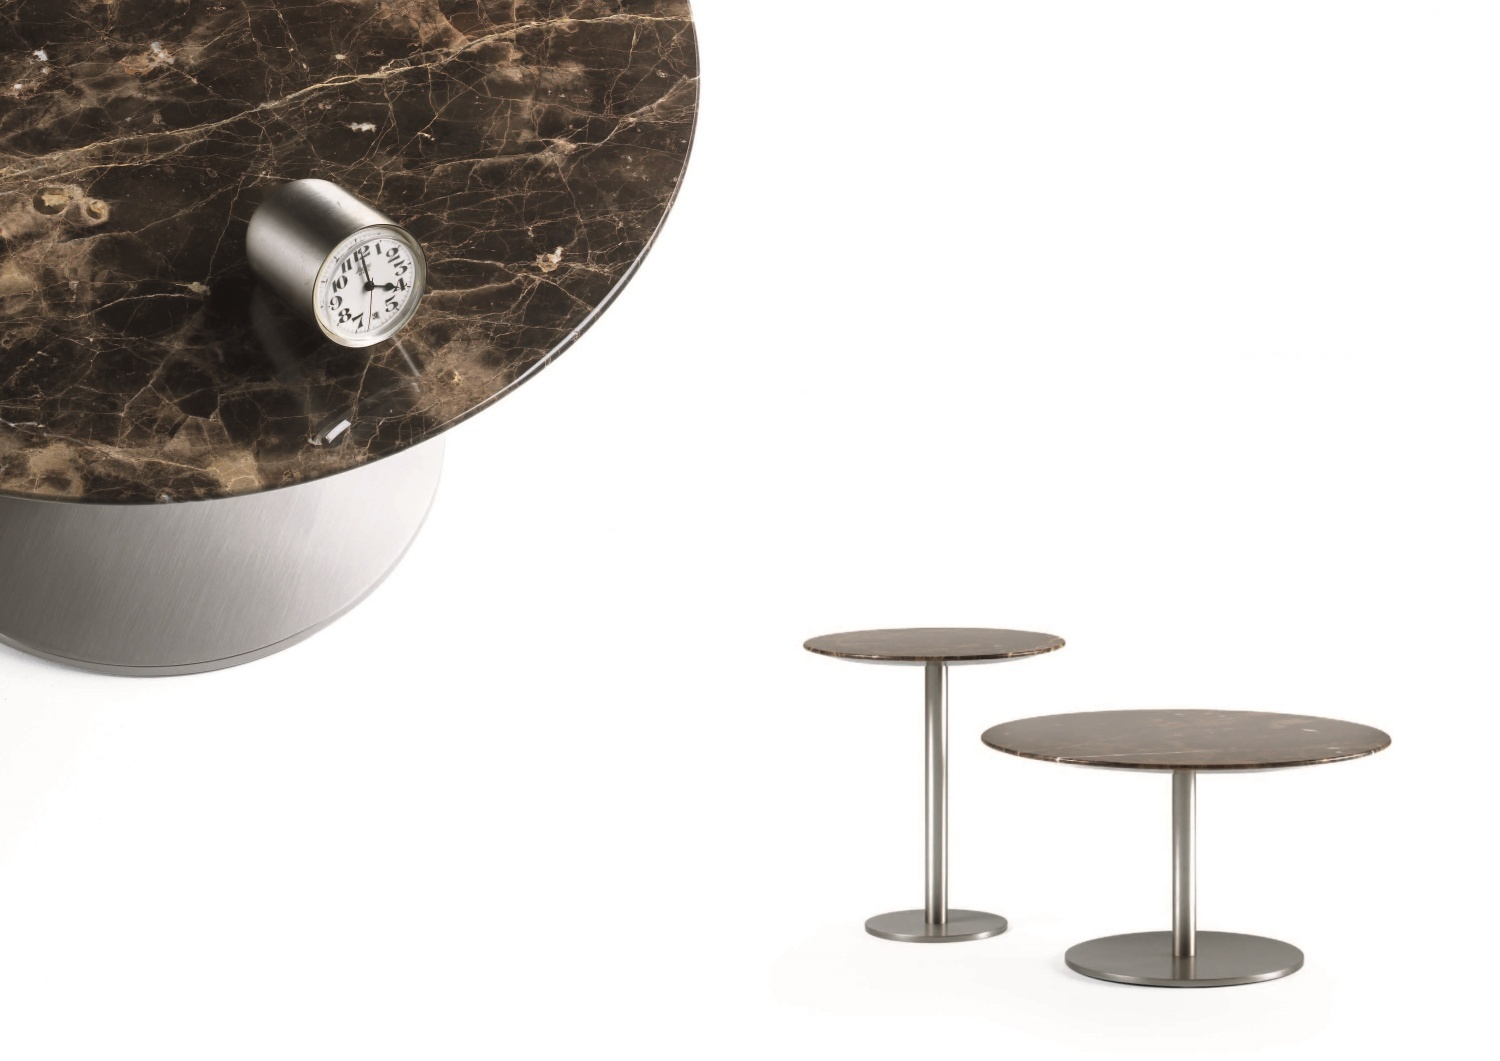 Coffee Break Round Table Giulio Marelli Luxury Furniture Mr